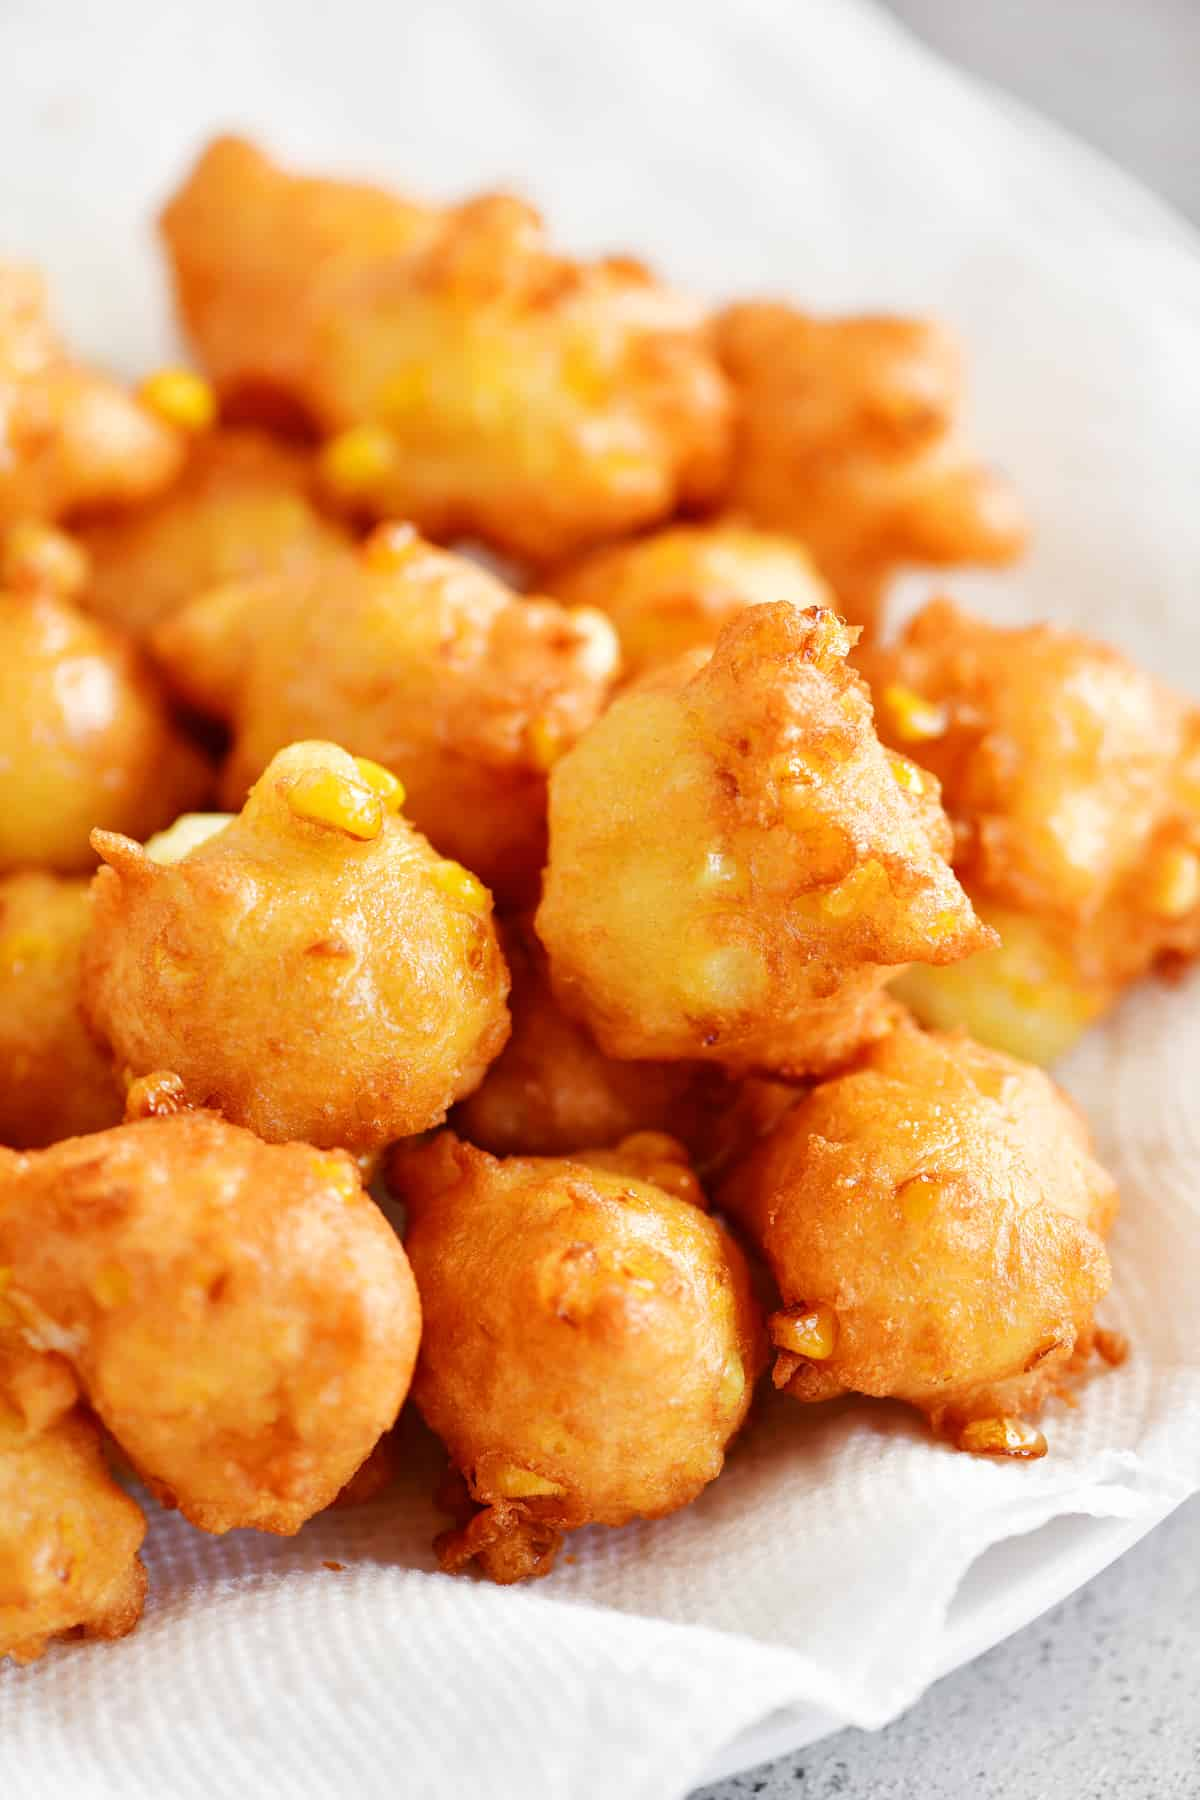 corn fritters draining on paper towels